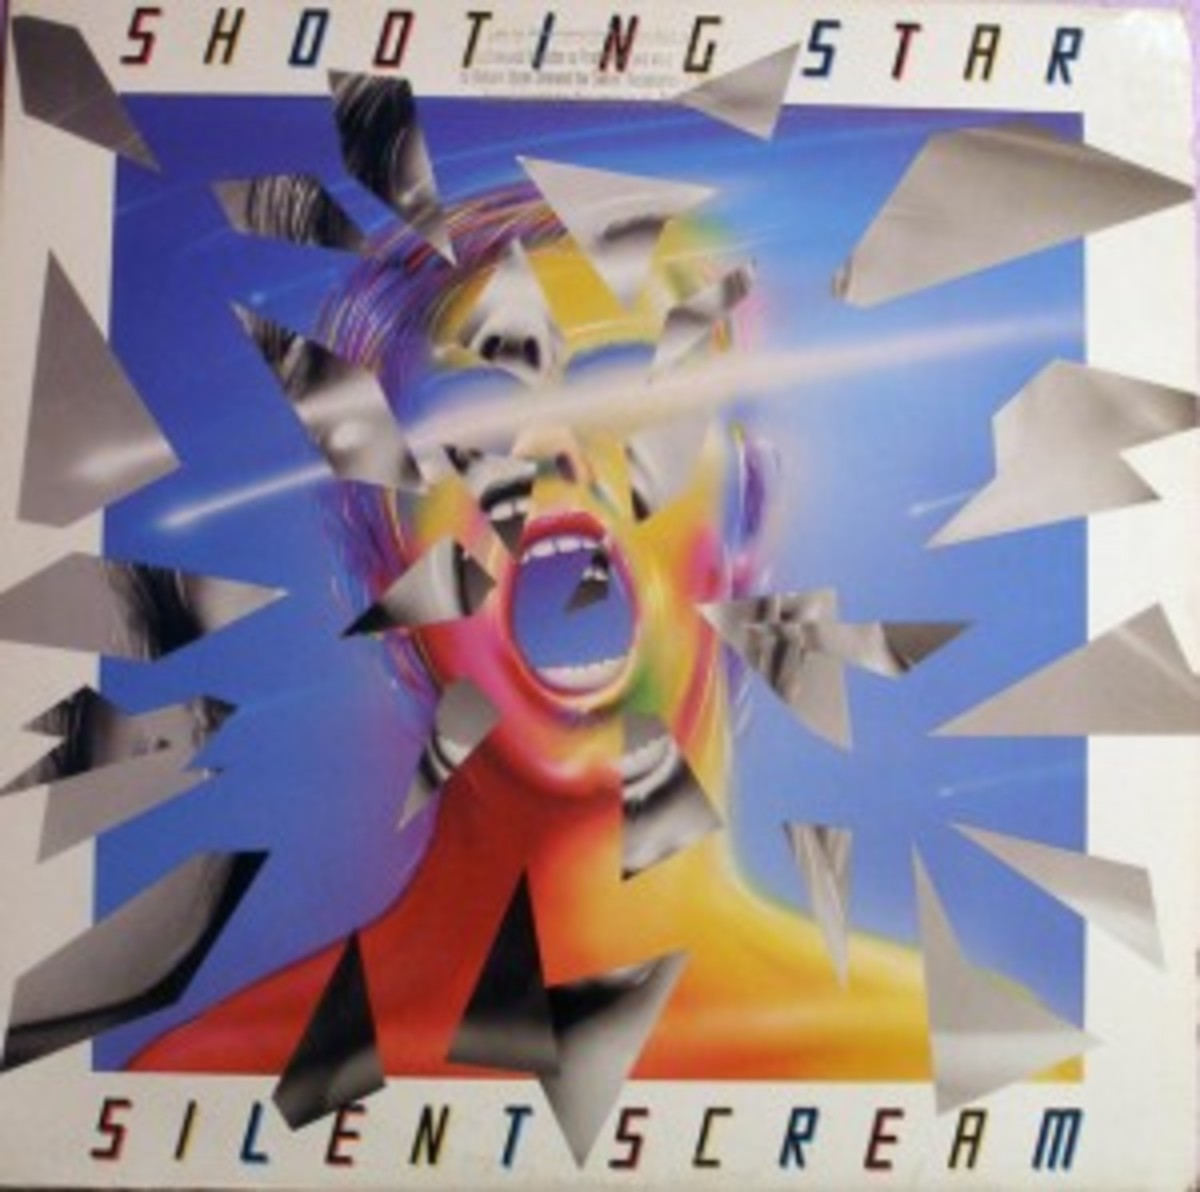 Shooting Star Silent Scream